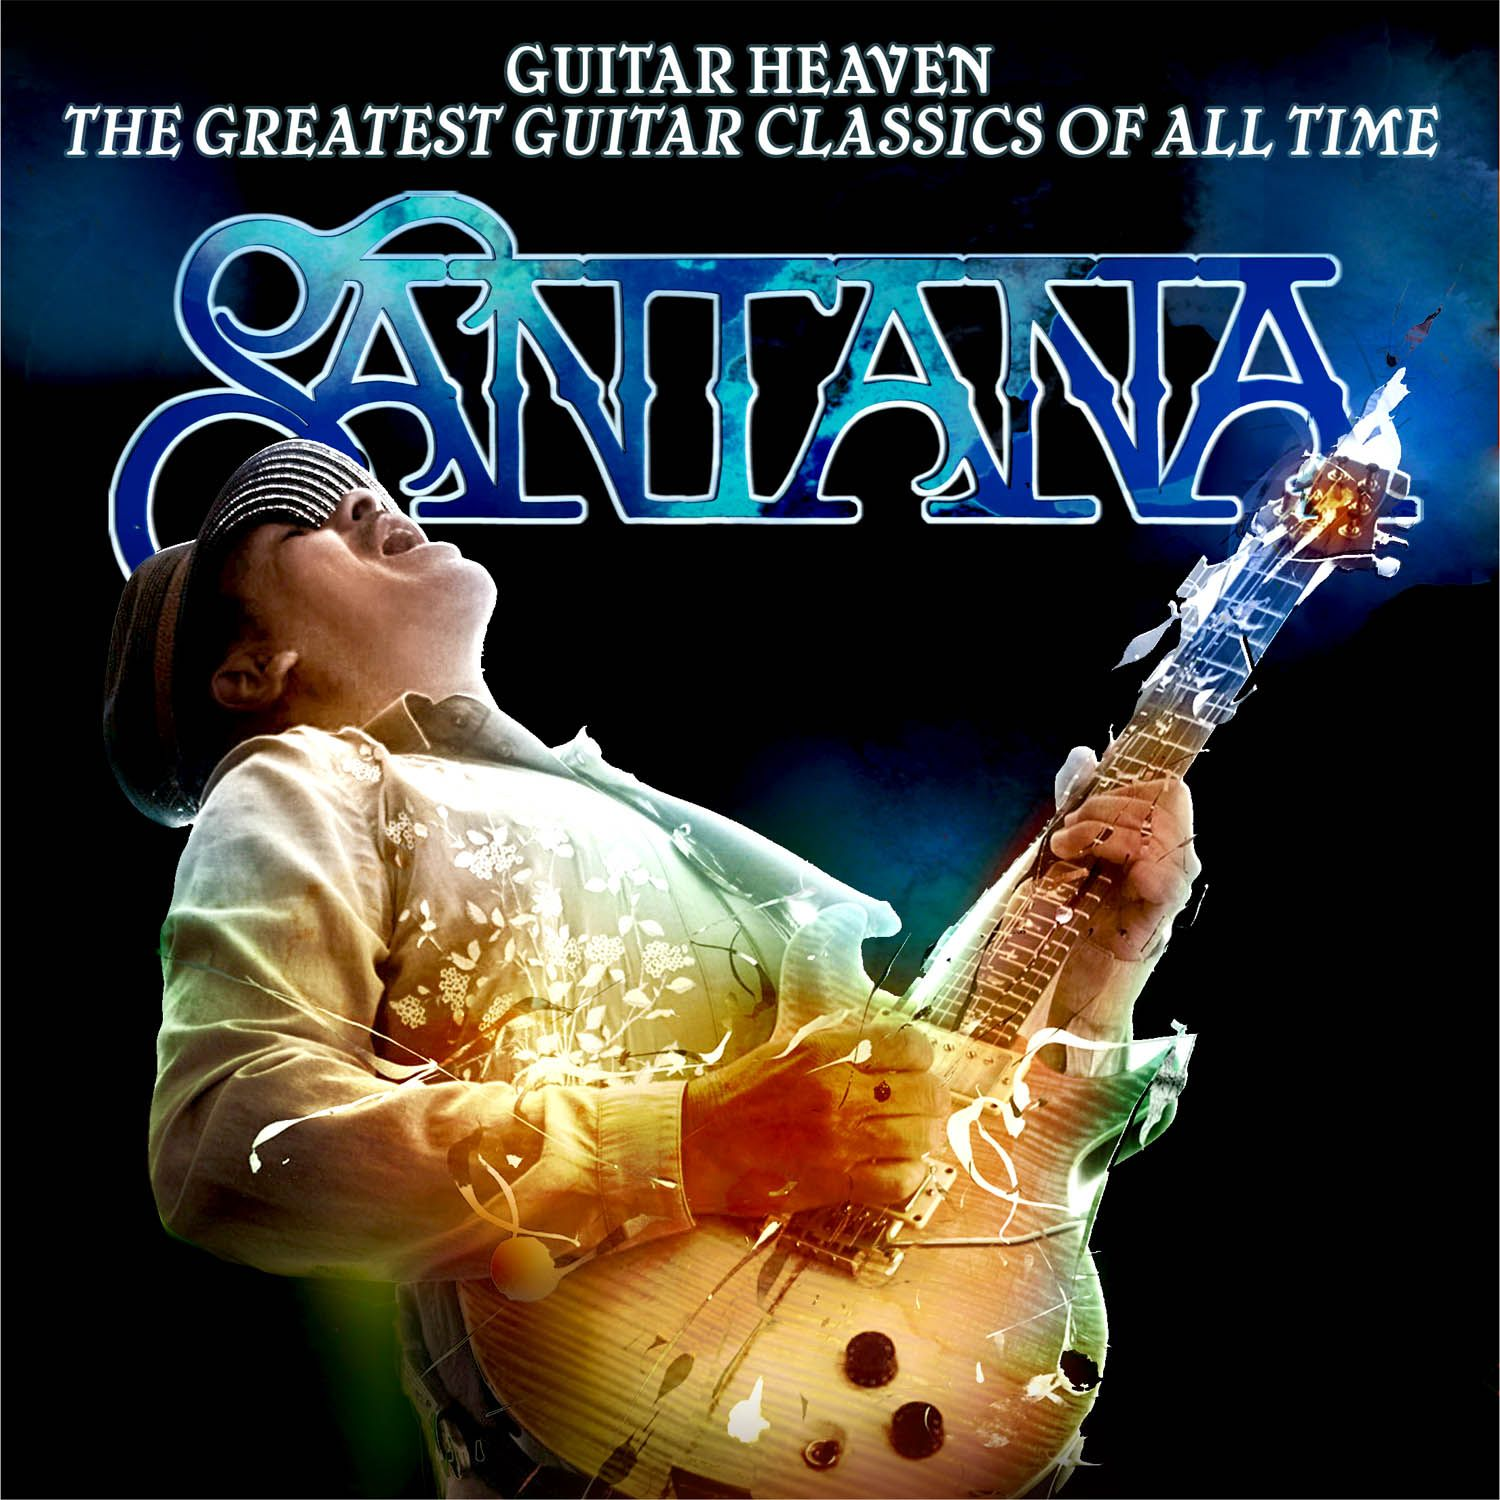 Santana - Guitar Heaven - The Greatest Guitar Classics Of All Time album cover